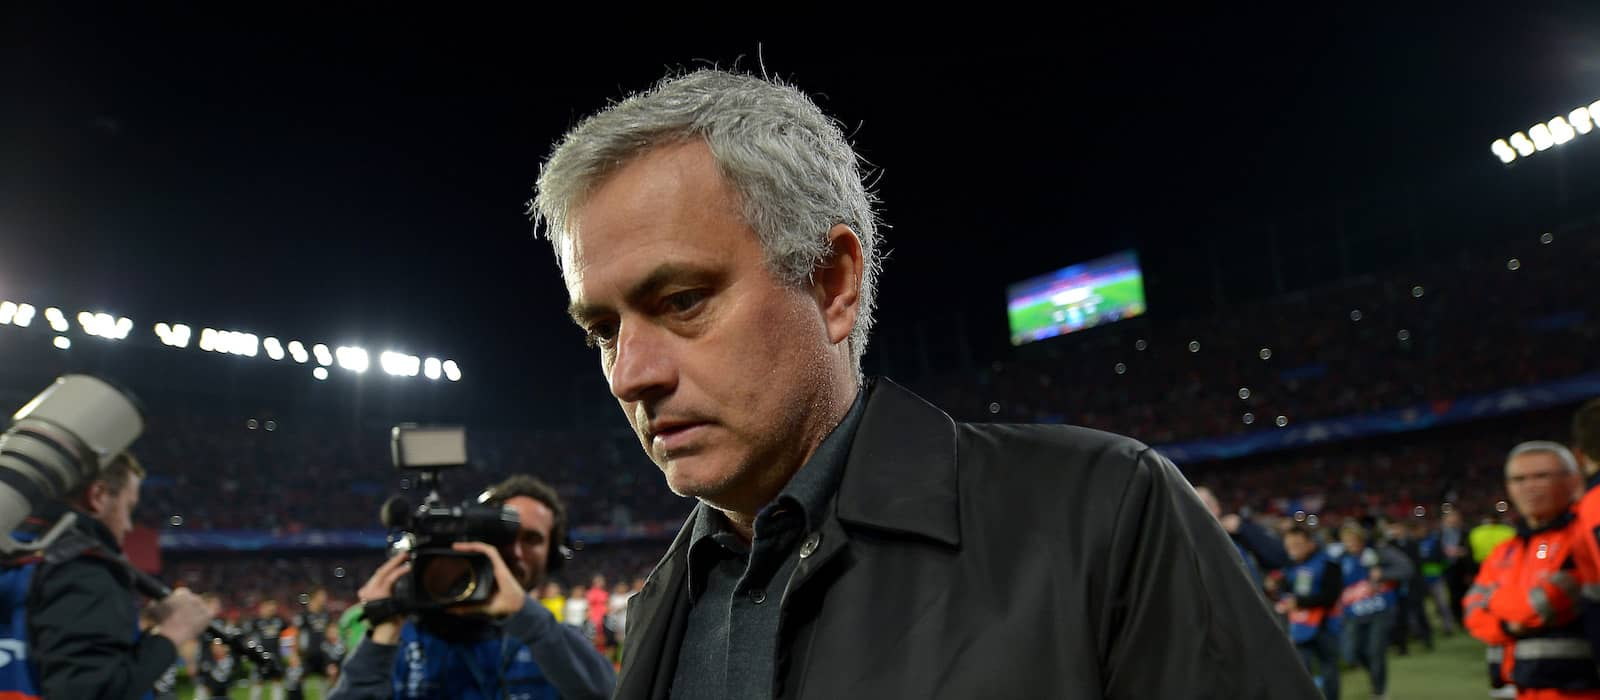 Jose Mourinho confirms he will make additions to his coaching staff this summer